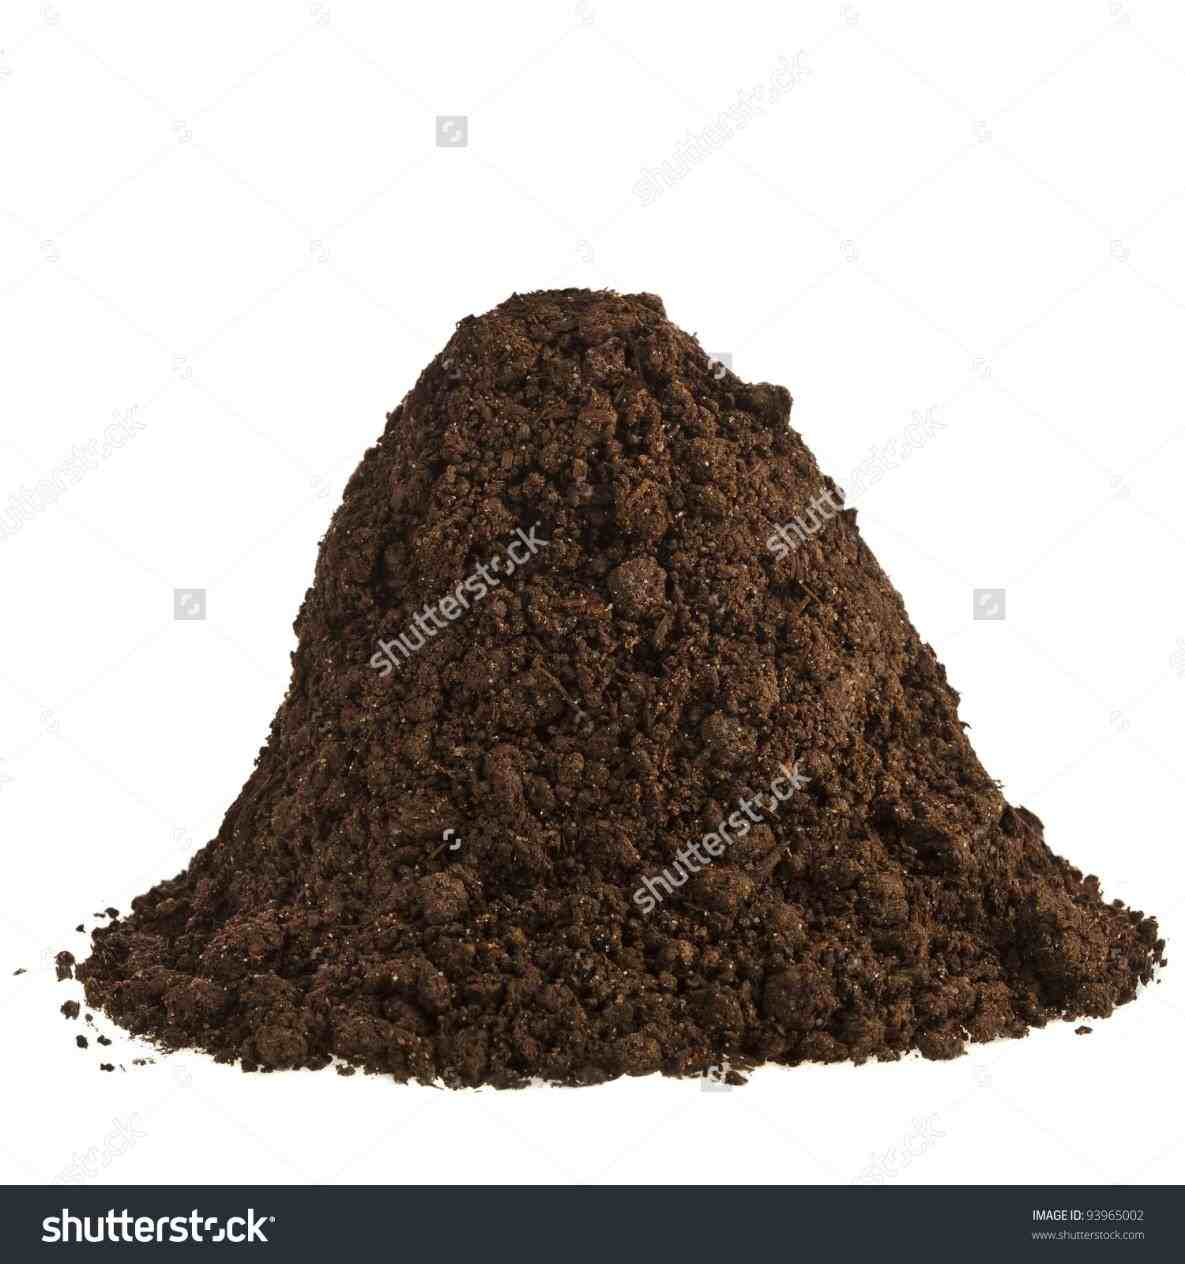 Mud clipart mud pile Download clipart copay pile mud